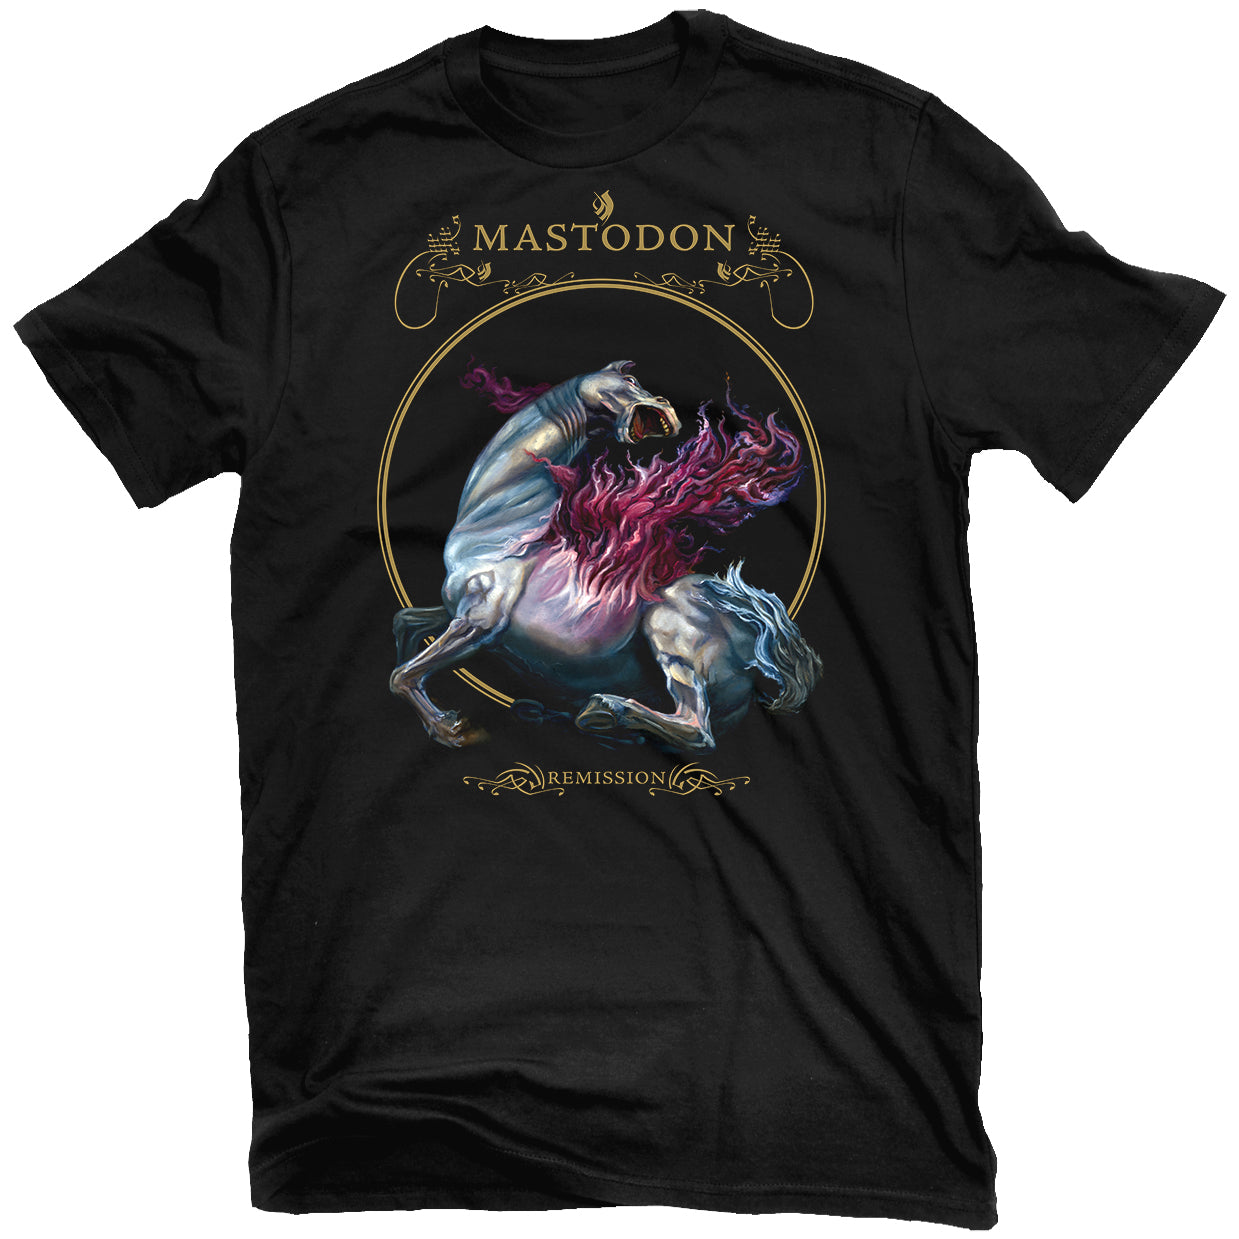 Mastodon - Remission T-Shirt